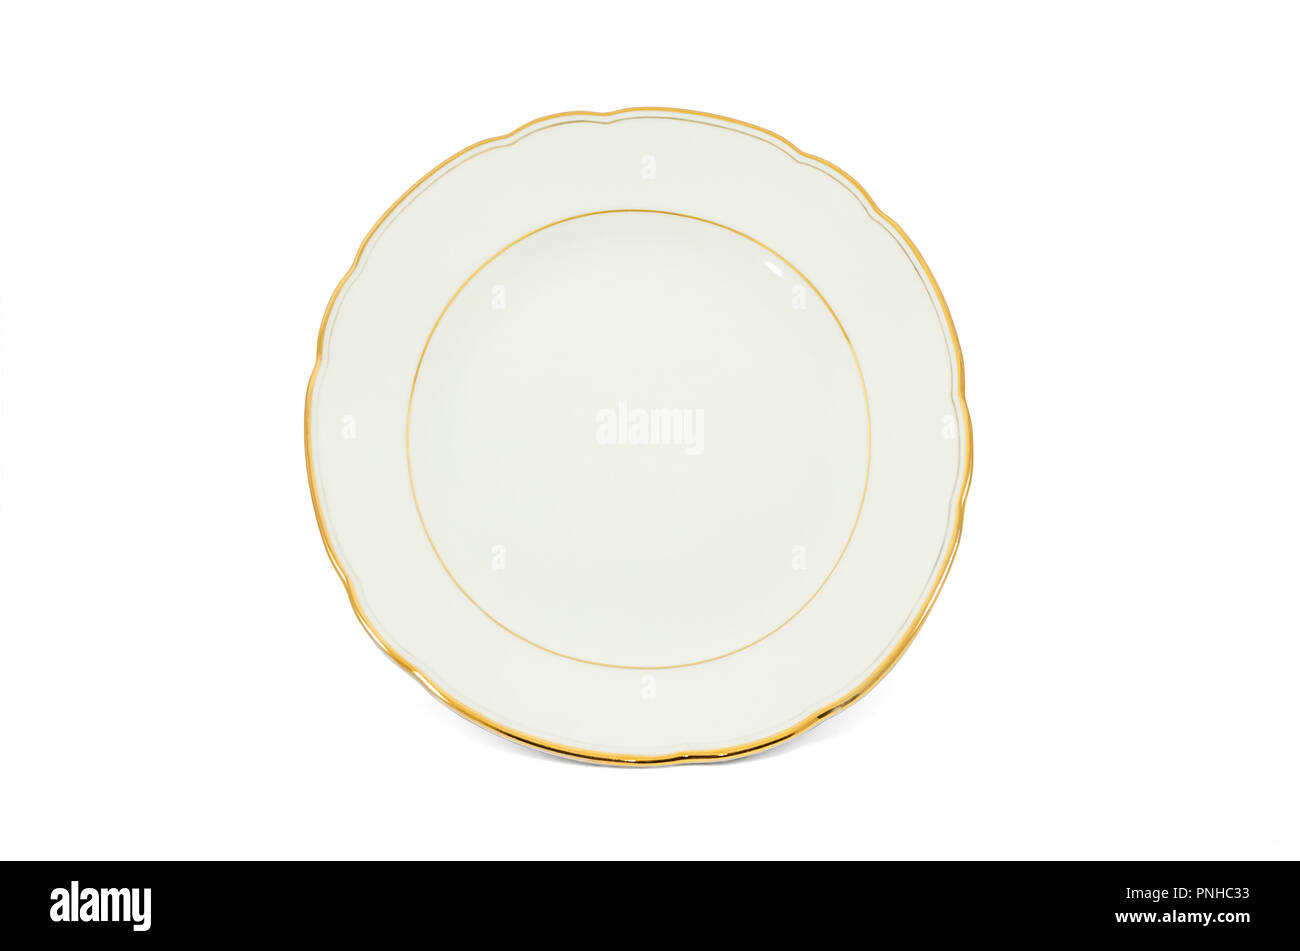 Old-fashioned porcelain dish with gilded border isolated on white background - Stock Image